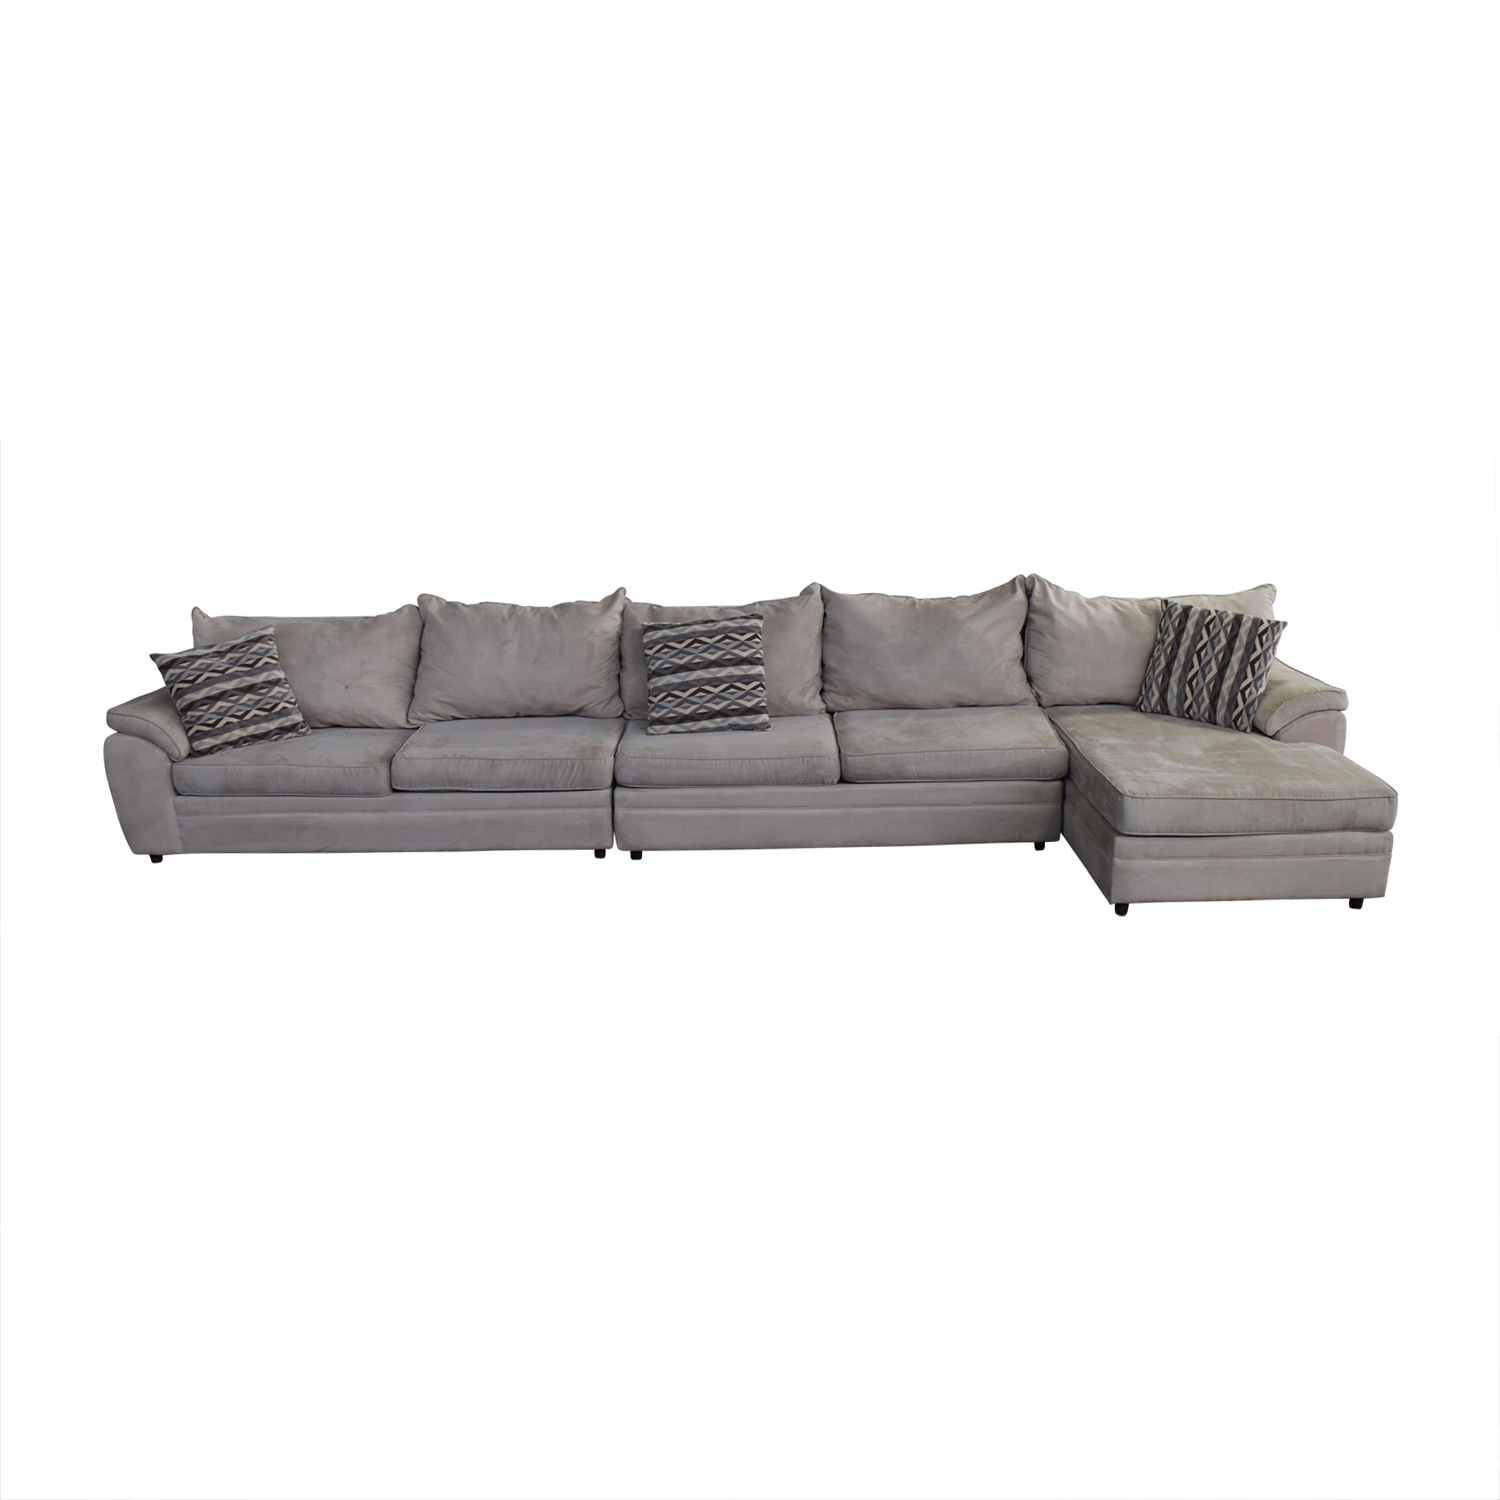 Bob S Furniture Beige Microfiber Chaise Sectional Price